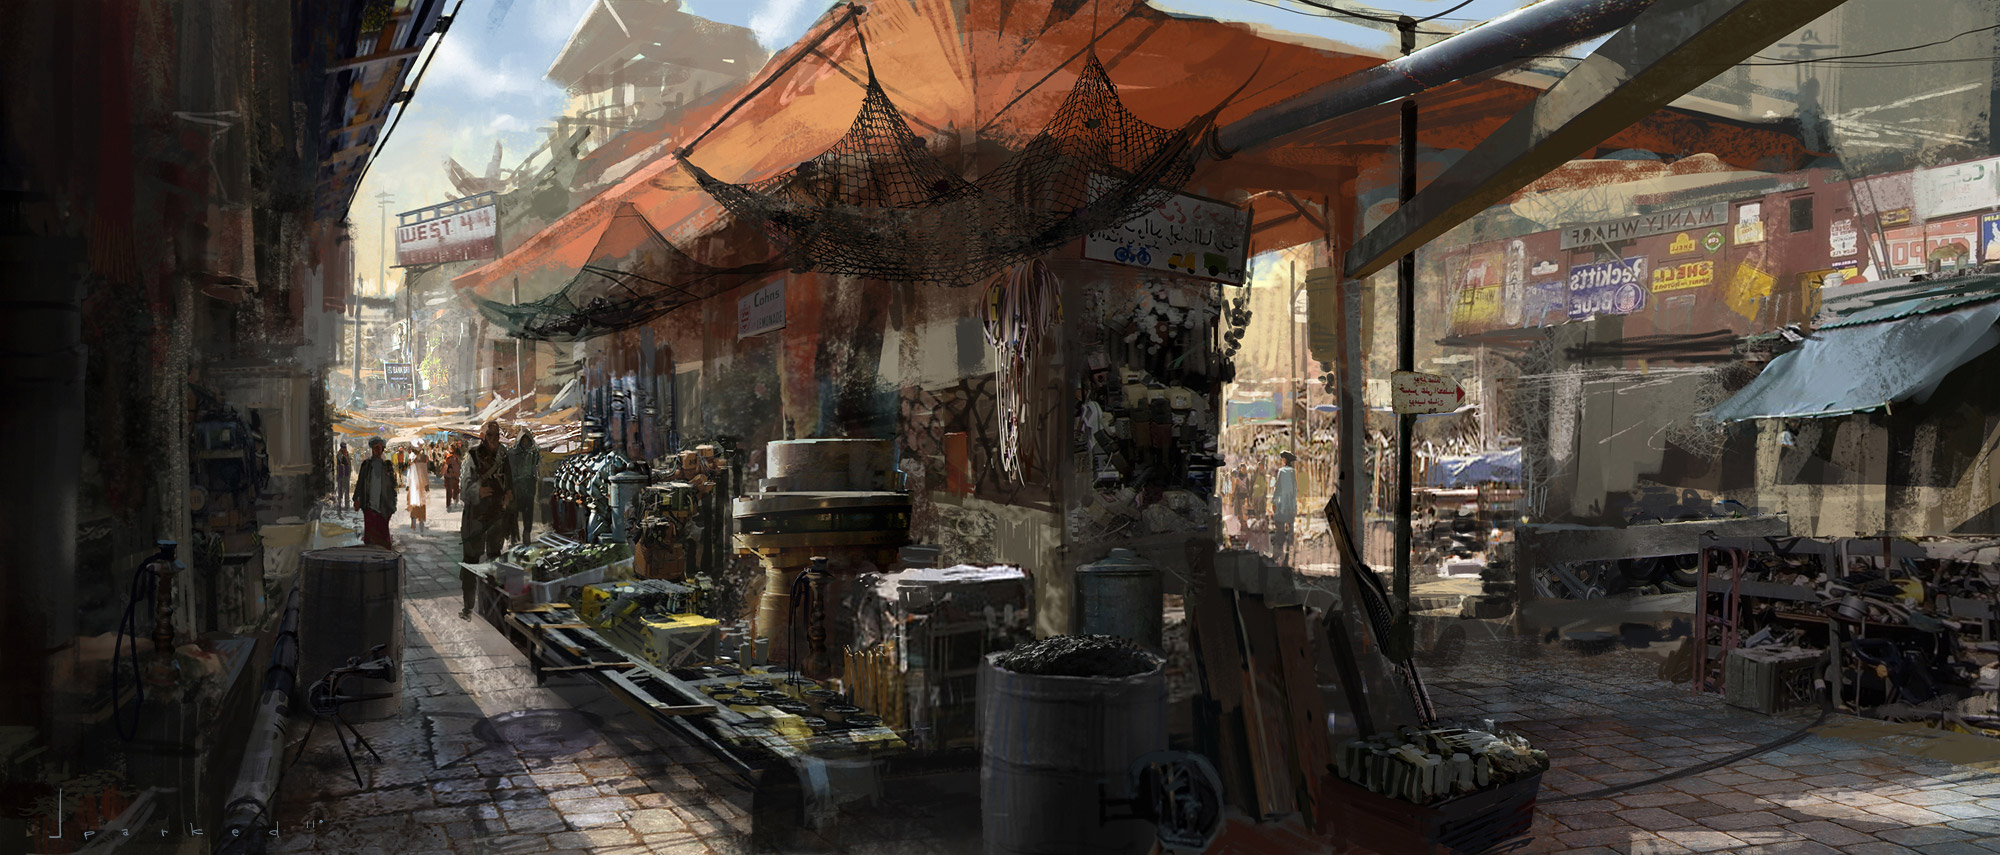 Halo Wallpaper Fall Of Reach Market Place Exterior Digital Paintings